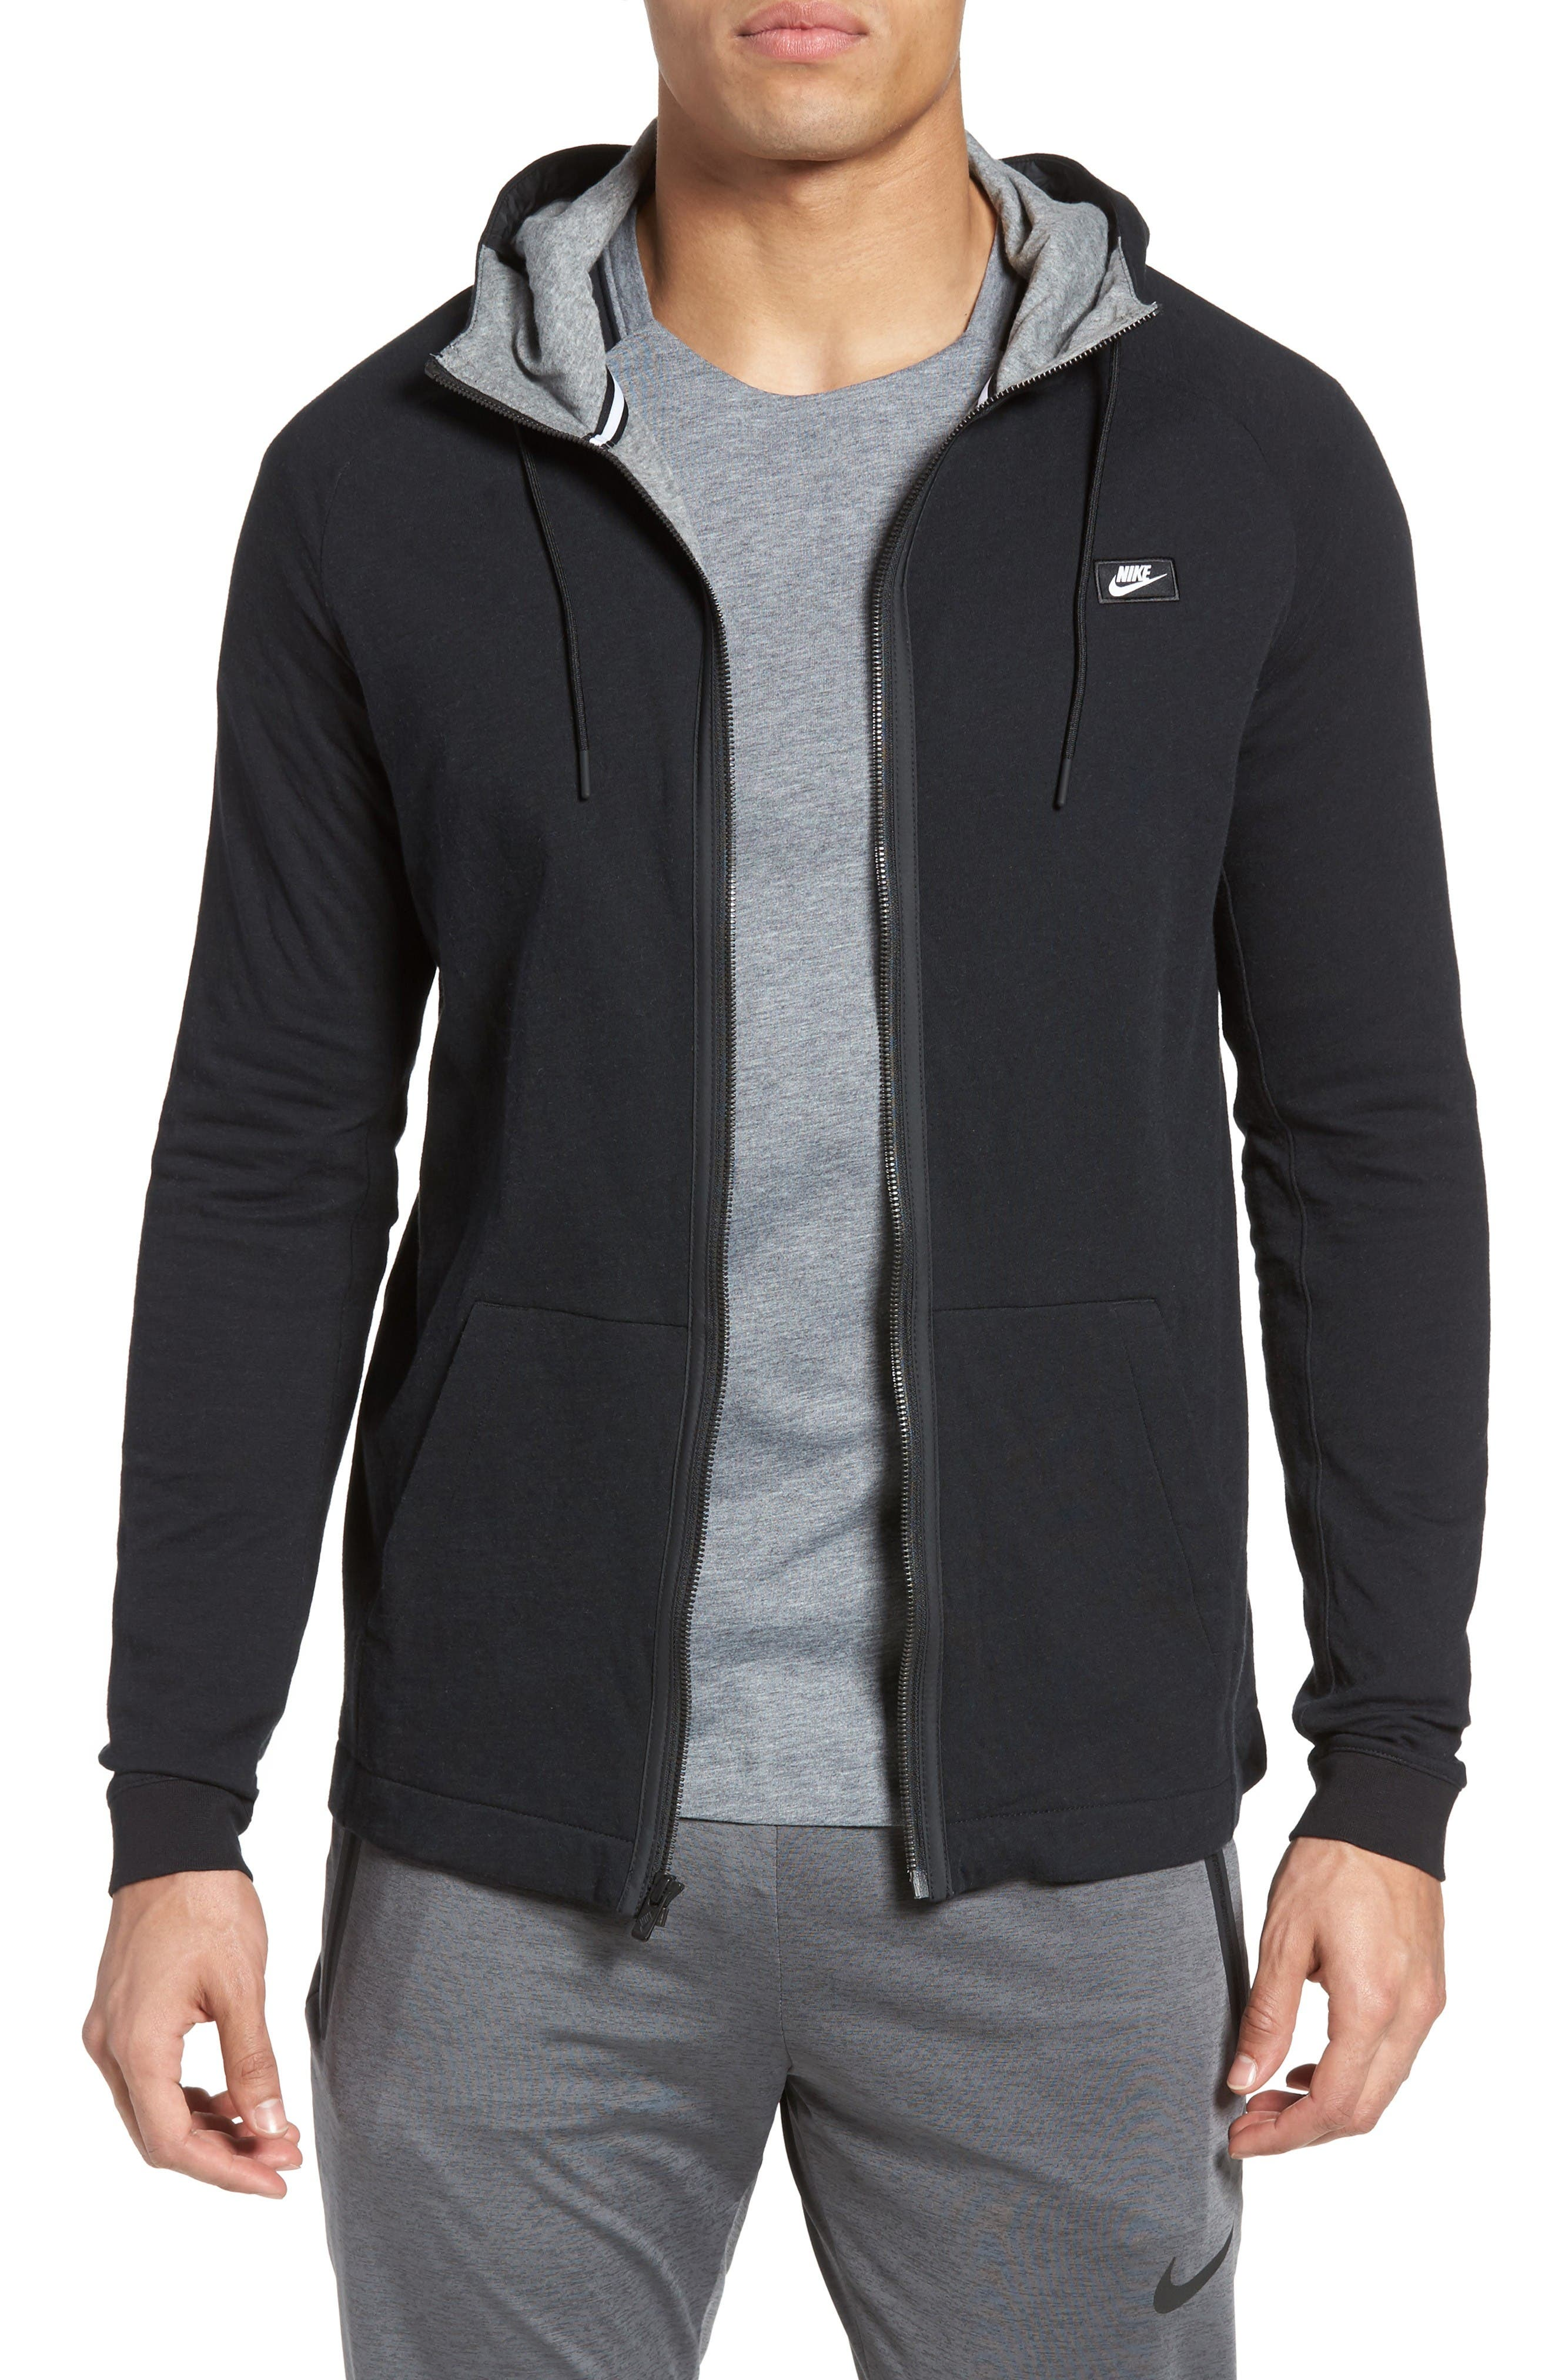 Tech Regular Fit Fleece Hoodie,                         Main,                         color, Black/ Carbon Heather